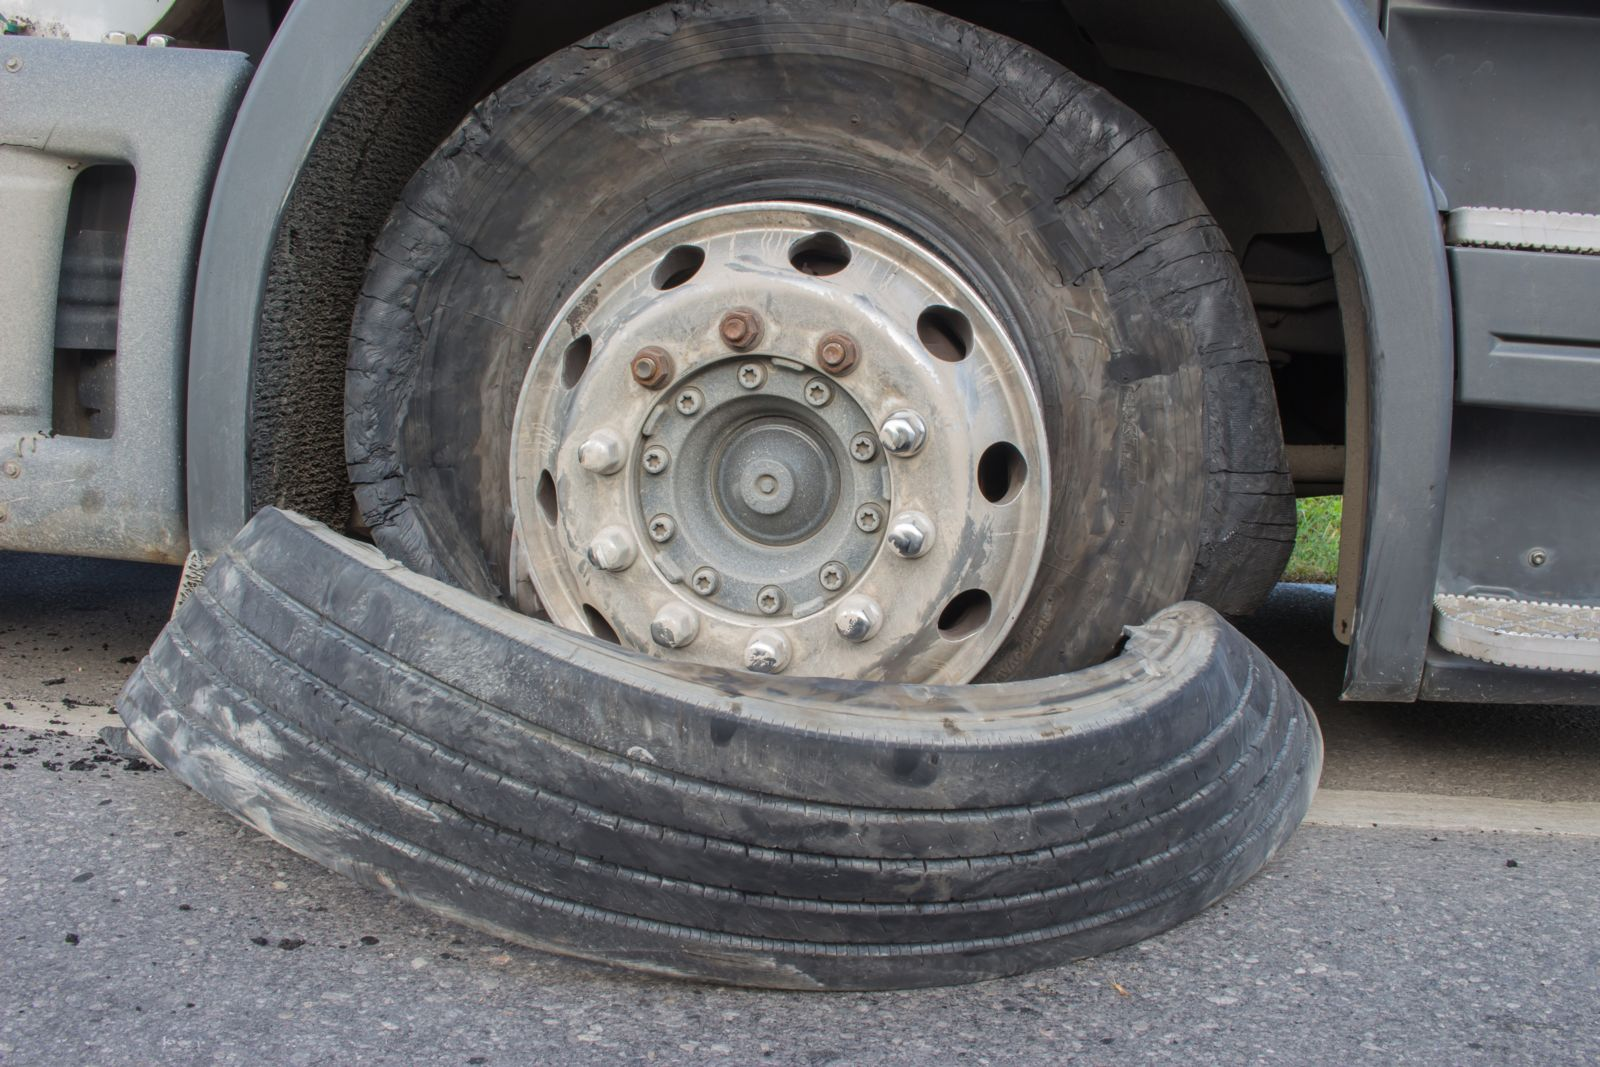 Semi-truck tire blowout causes an accident.